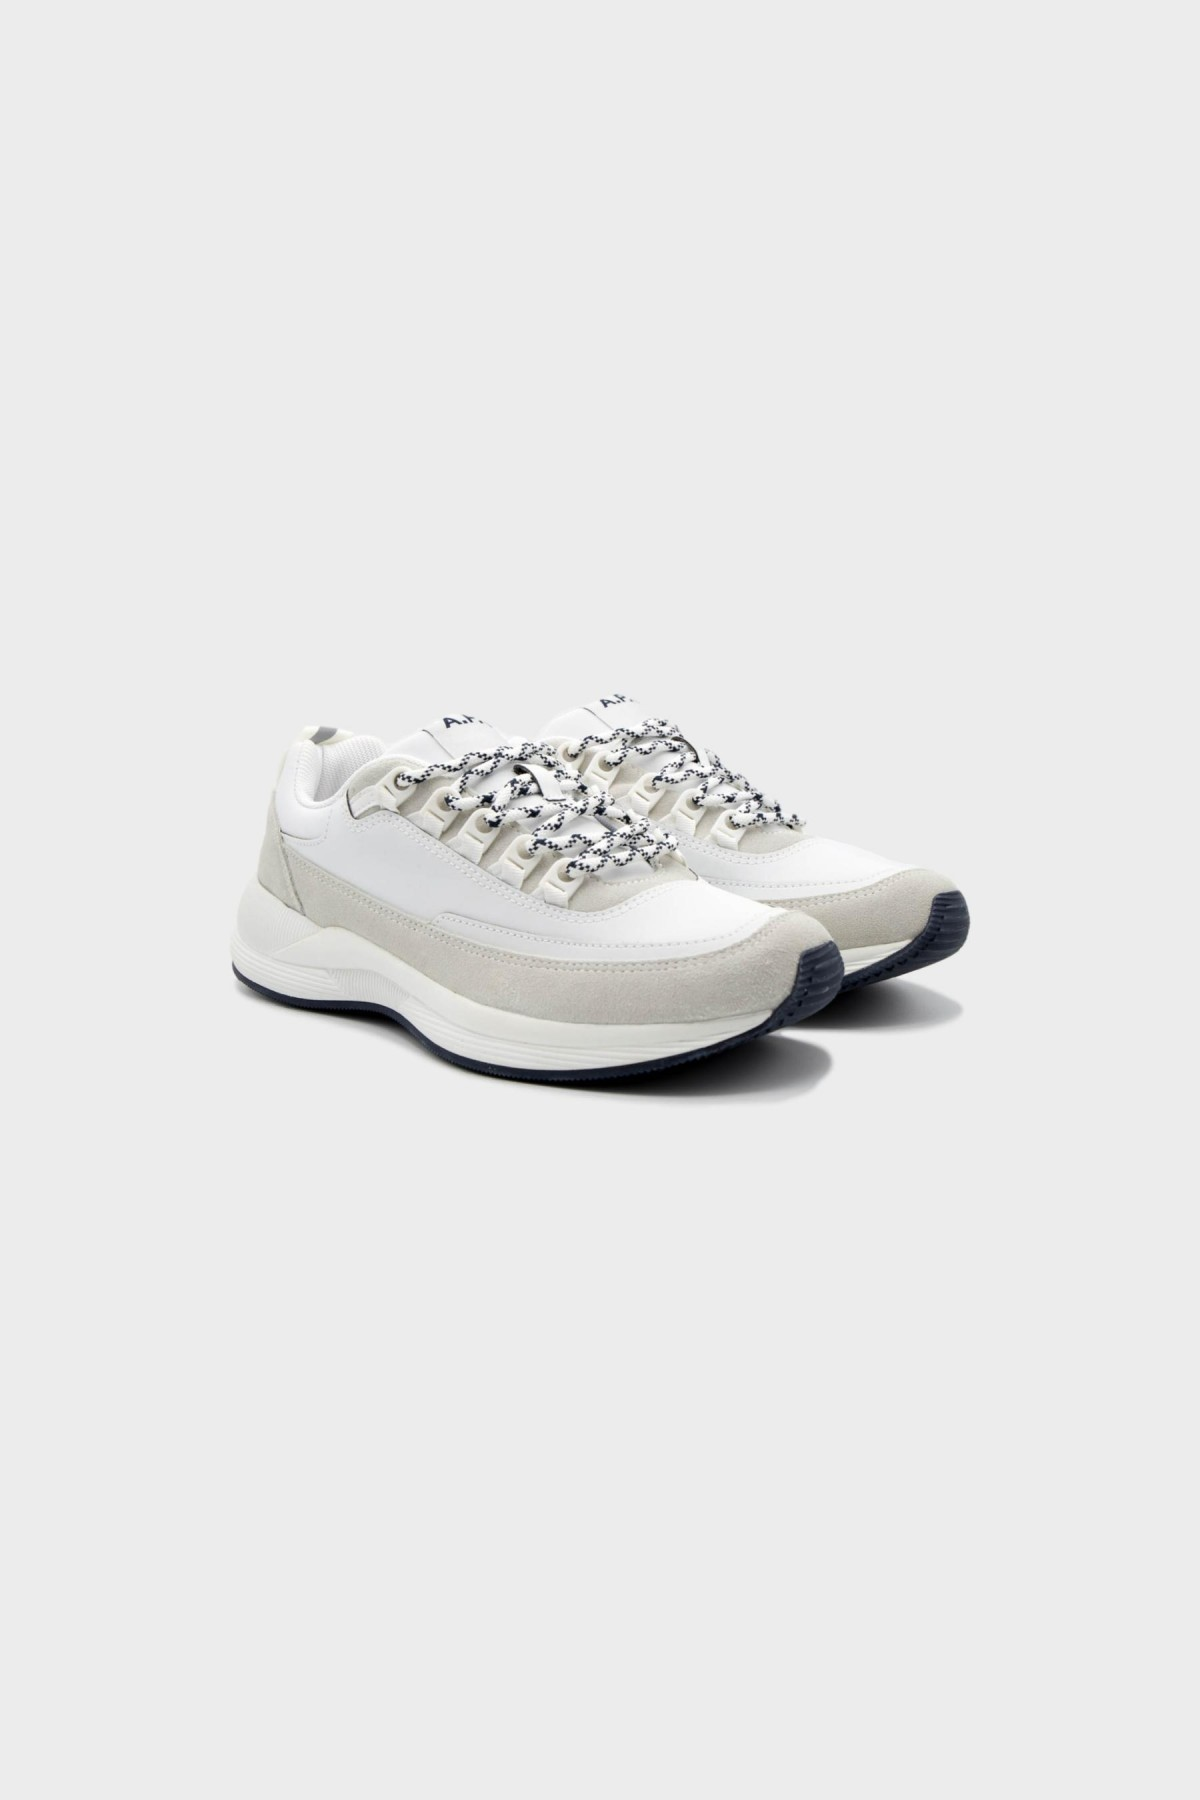 A.P.C. Jay Sneakers in Blanc